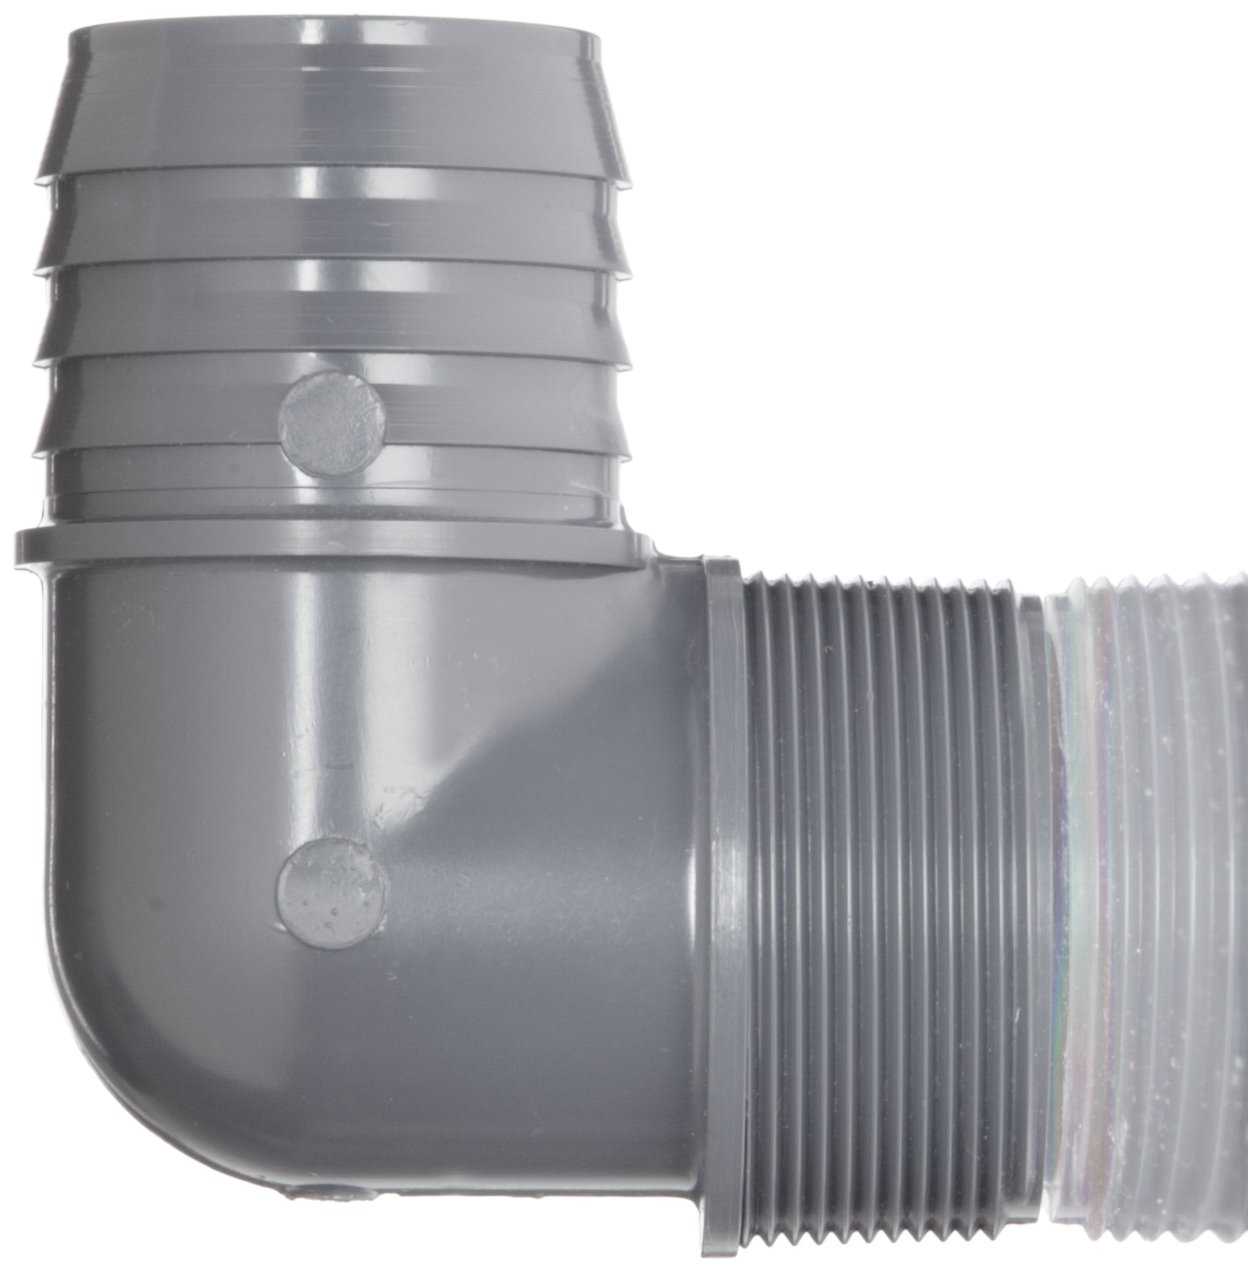 1//2 Barbed x NPT Male Spears 1413 Series PVC Tube Fitting 90 Degree Elbow Schedule 40 Gray